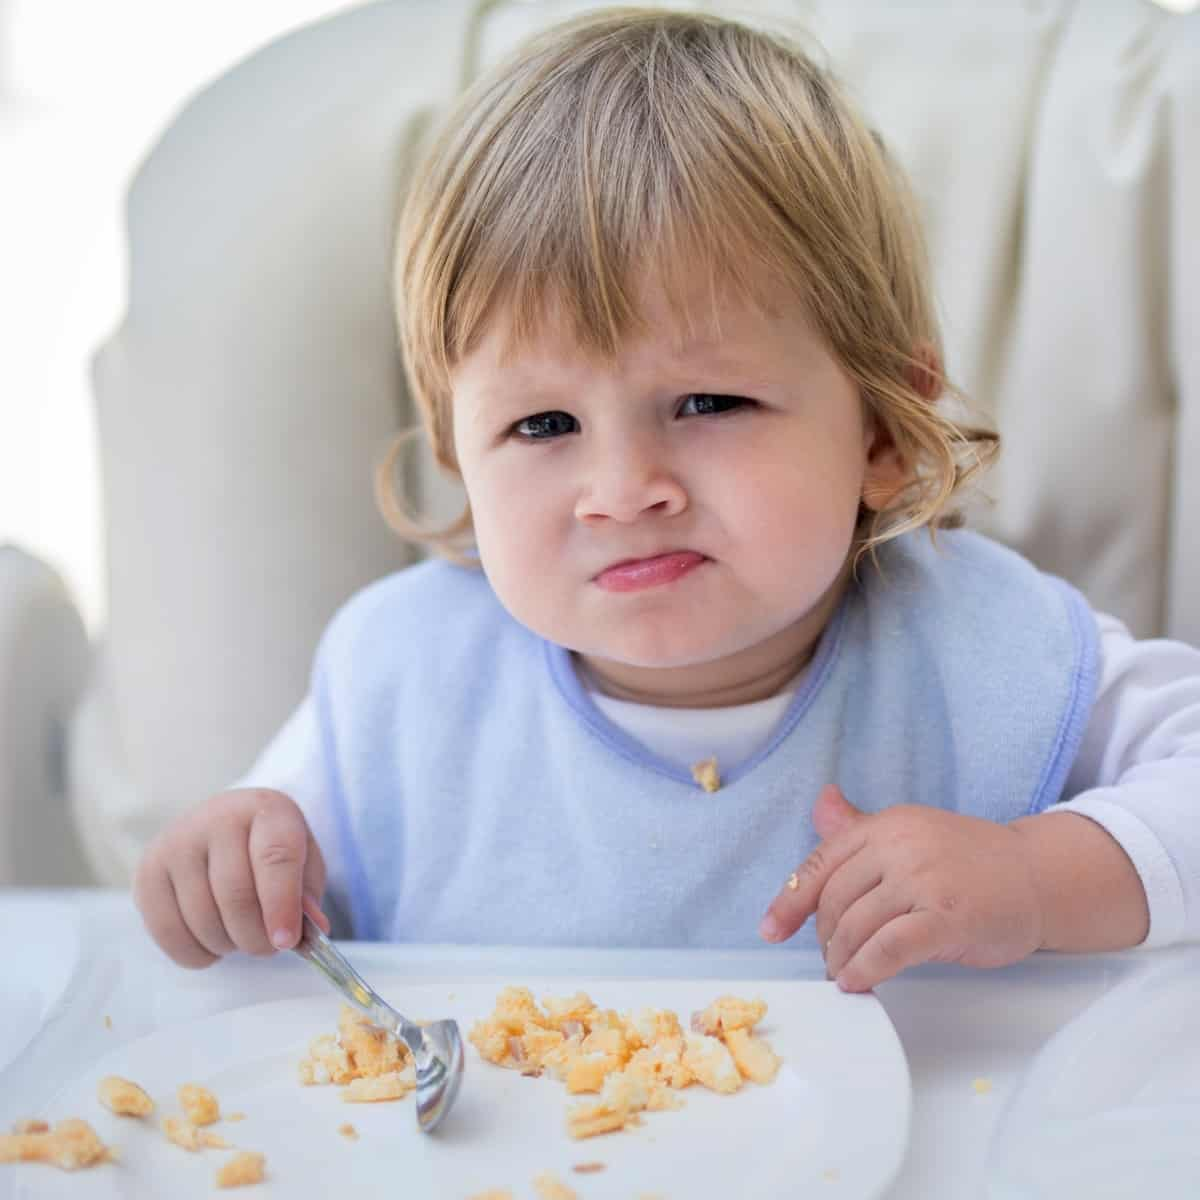 A toddler sitting in a high chair with a plate of scrambled eggs.